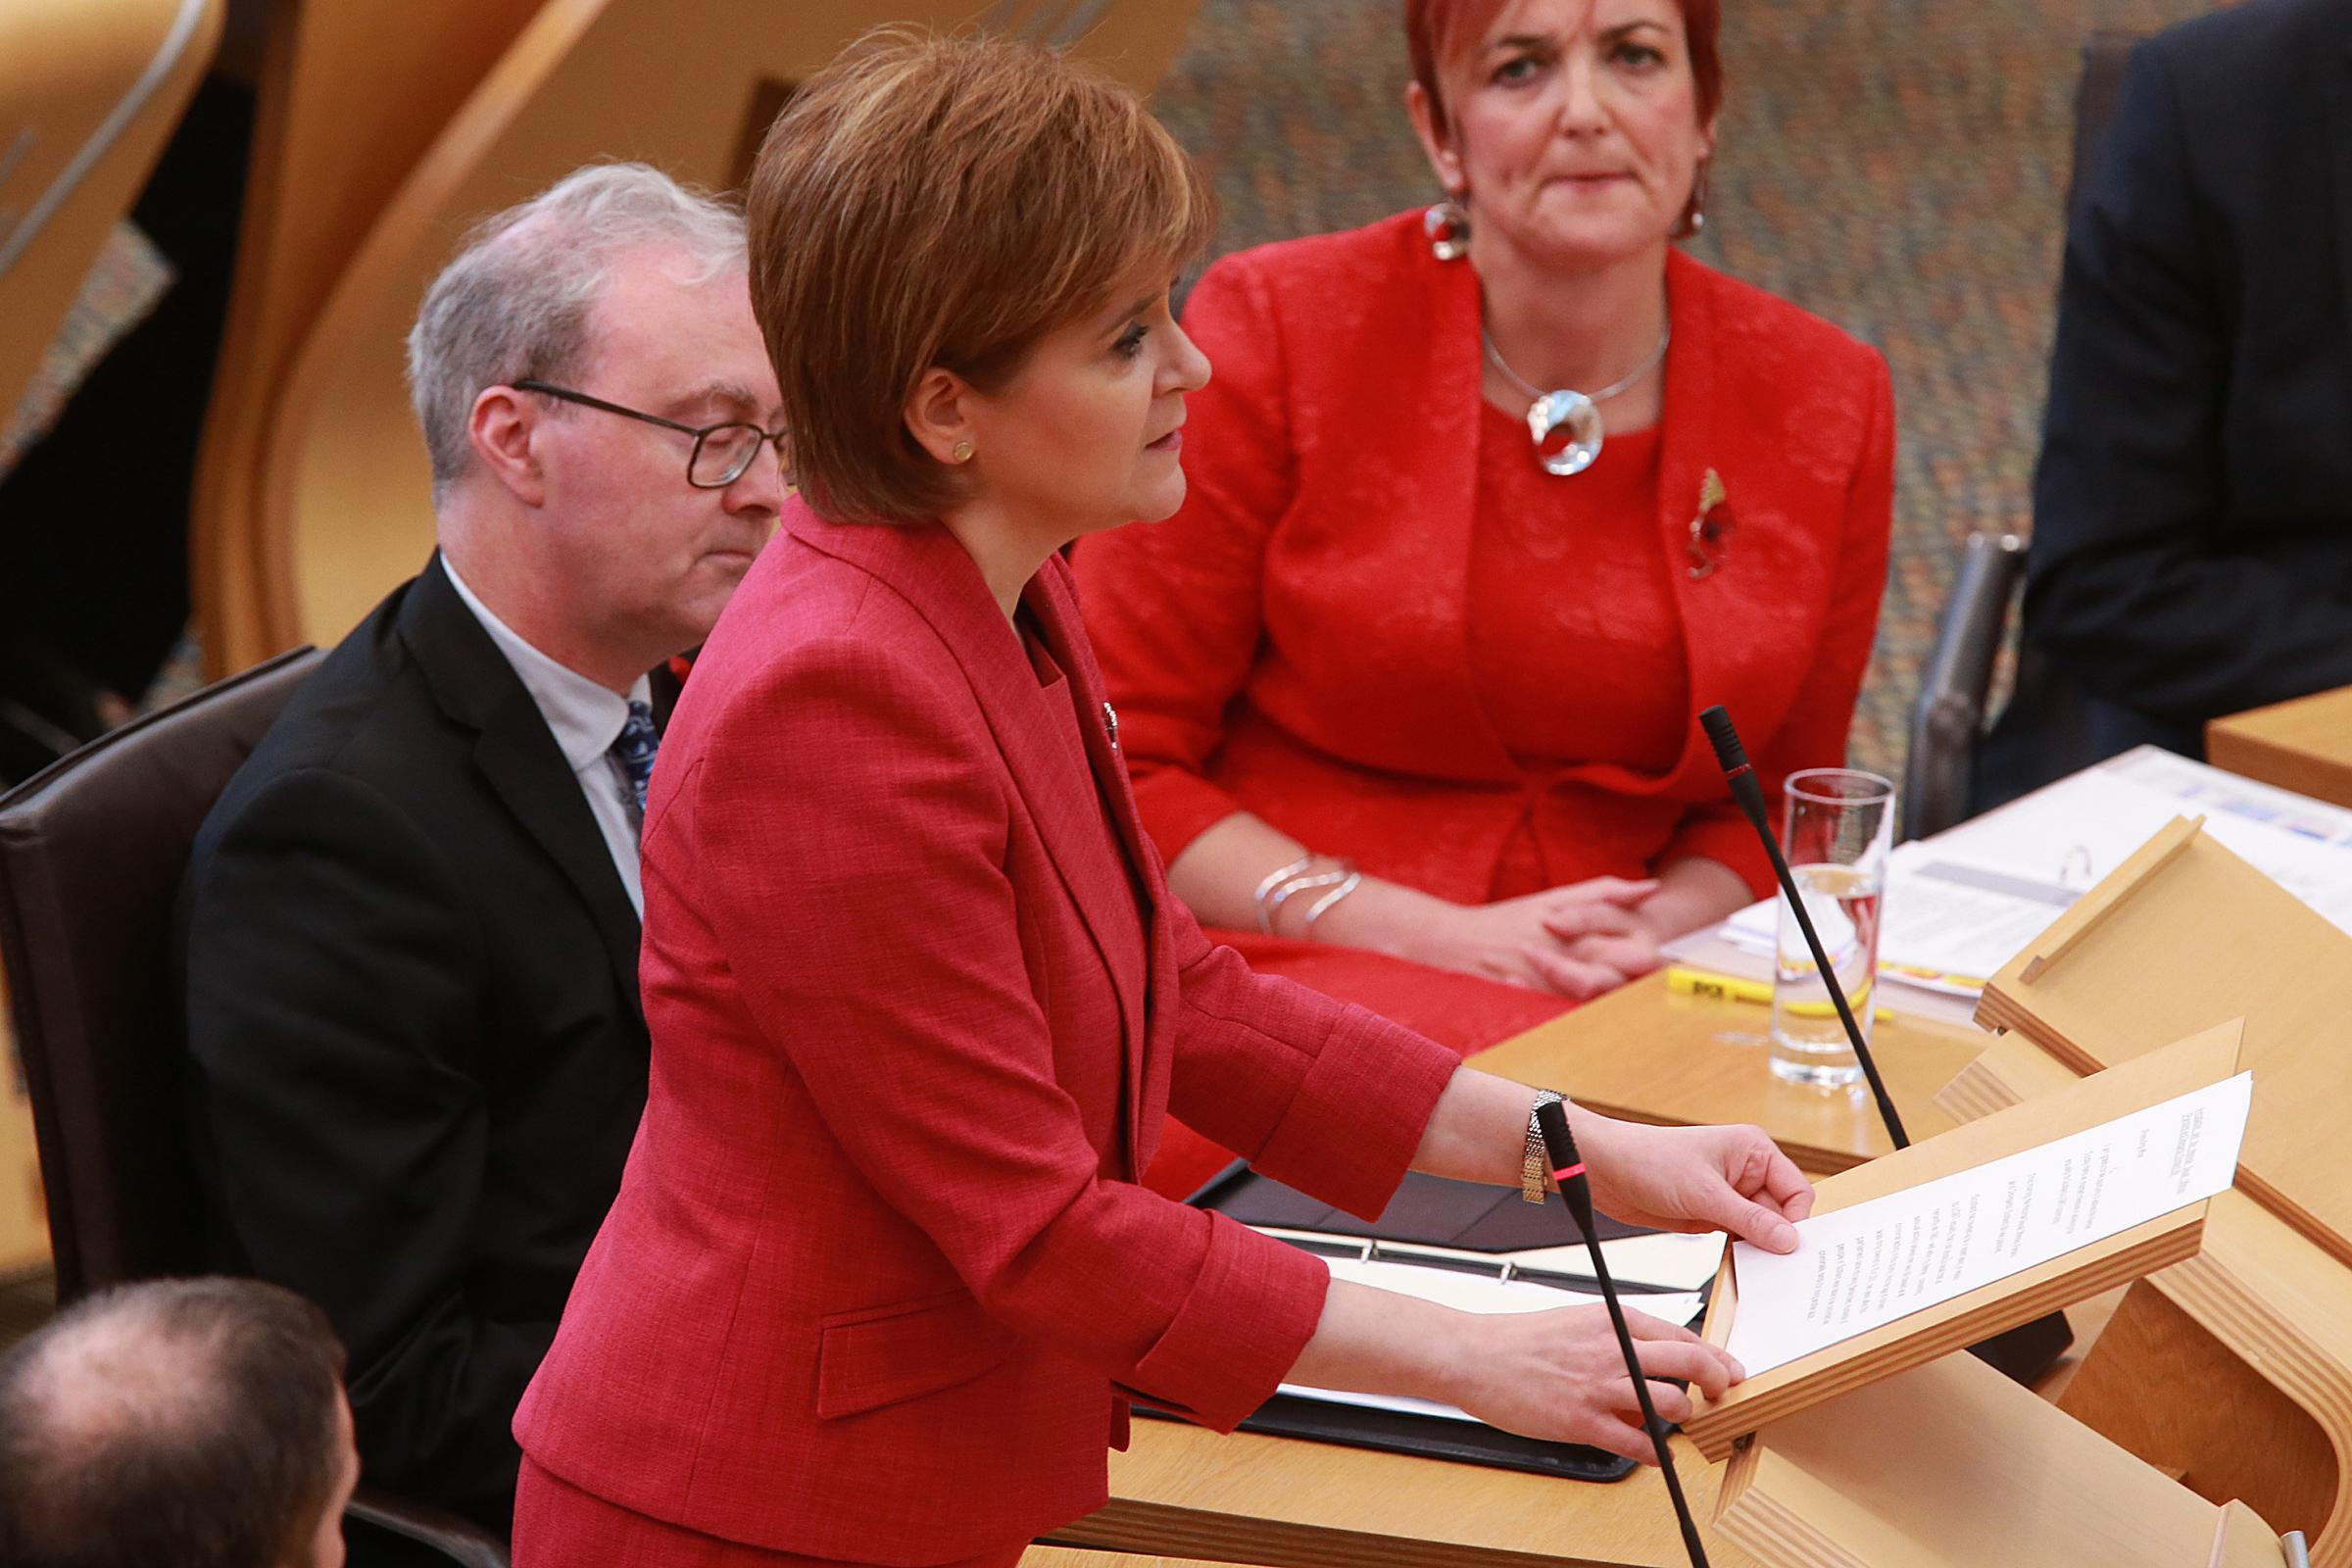 Nicola Sturgeon address the Scottish Parliament as she gives an apology to those convicted of same-sex sexual activity that is now legal